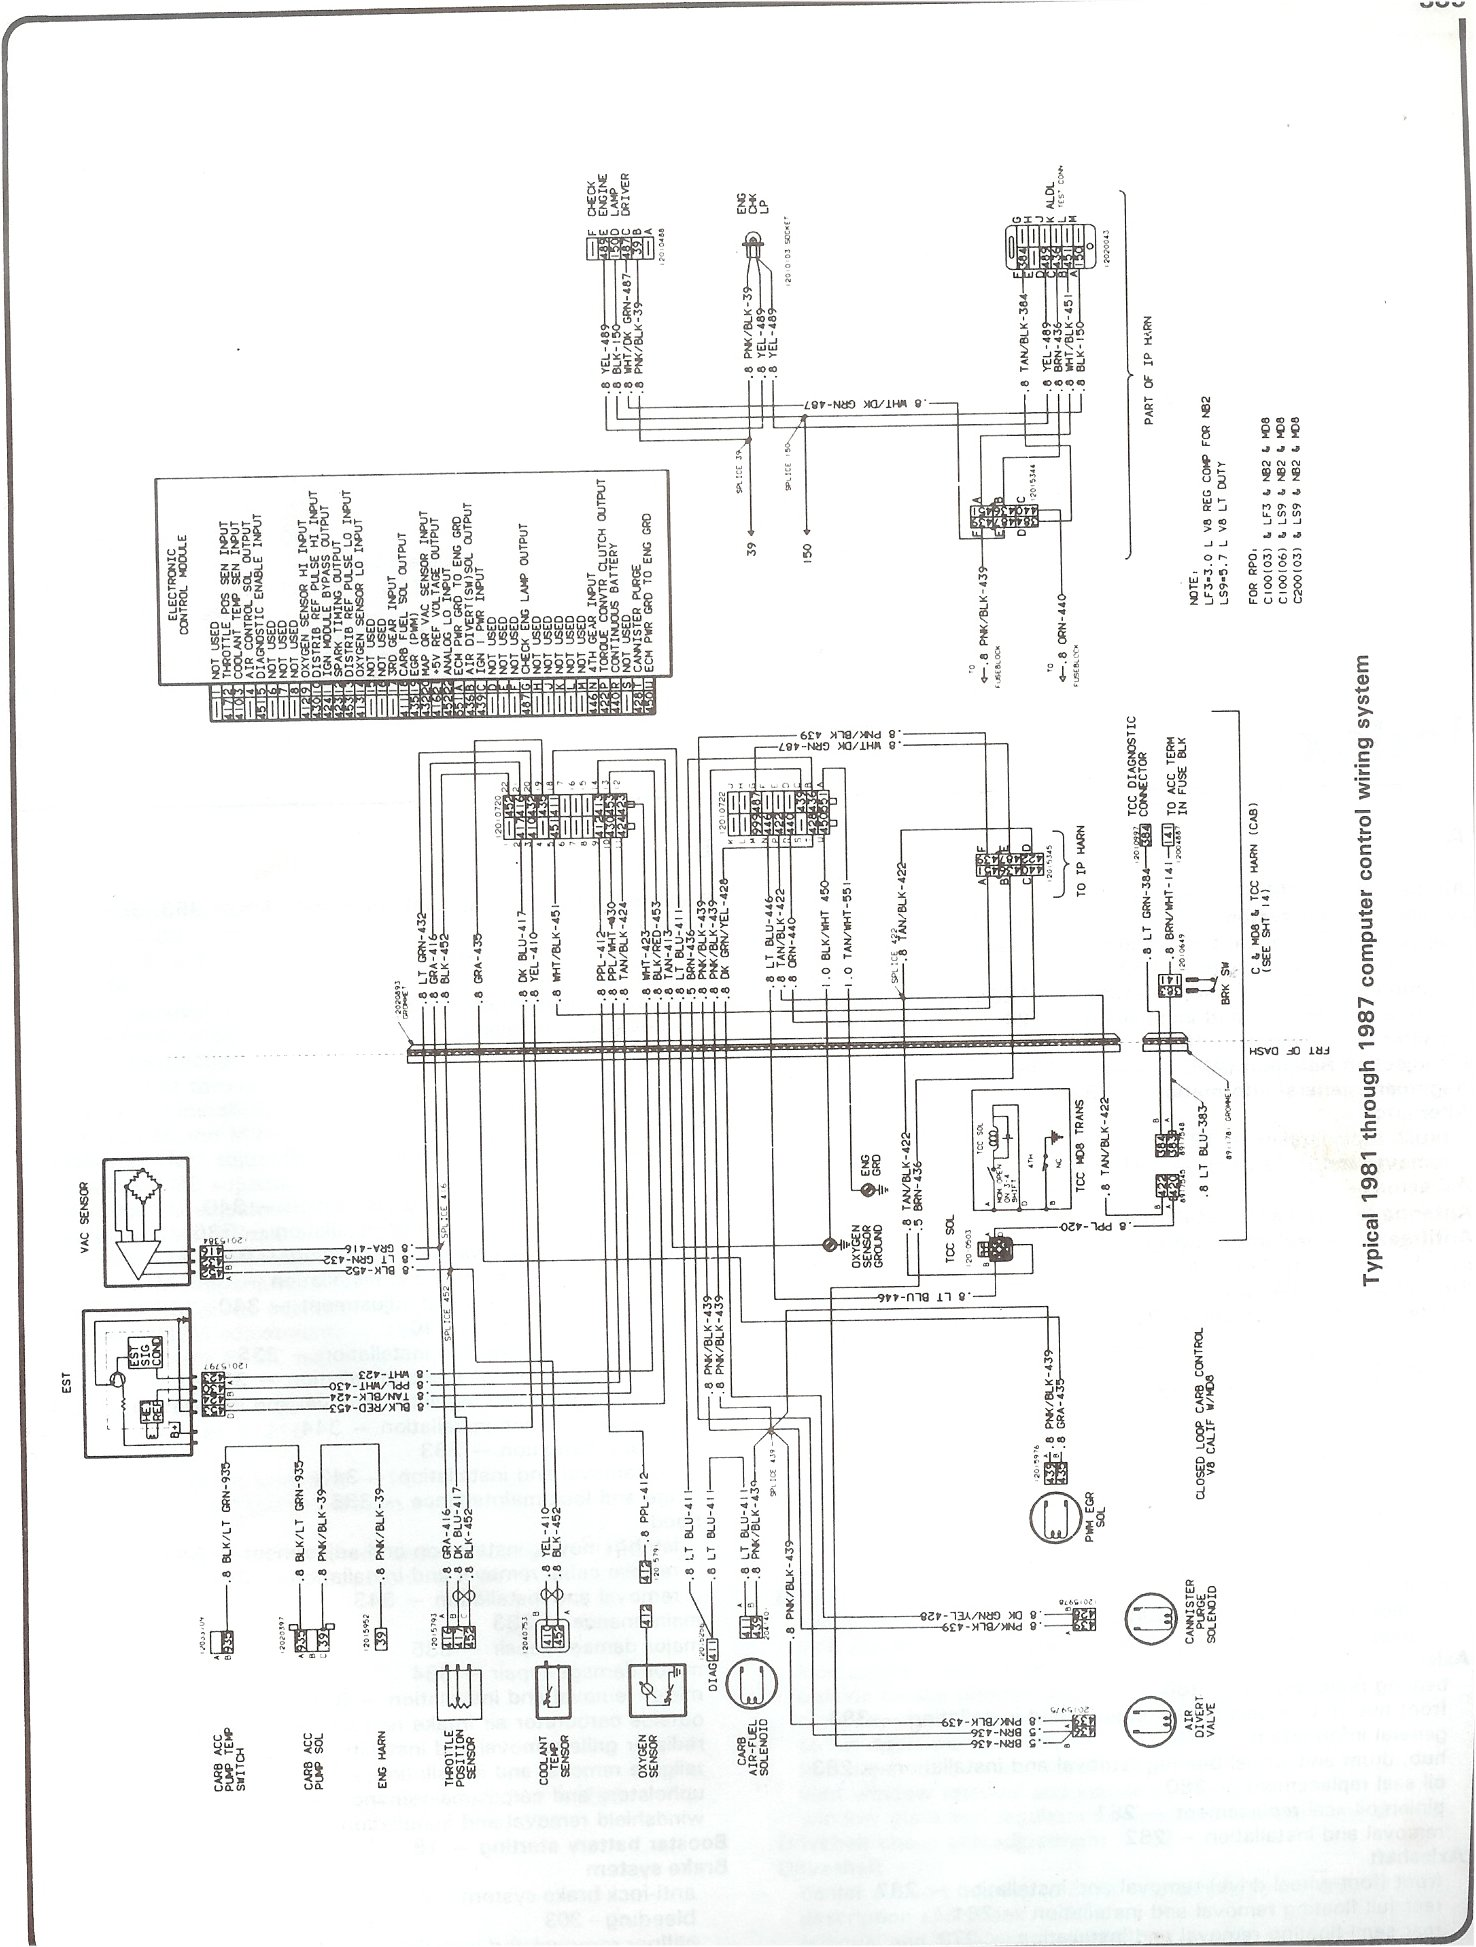 1976 Chevy Ignition Wiring Diagrams Schema Complete 73 87 Universal